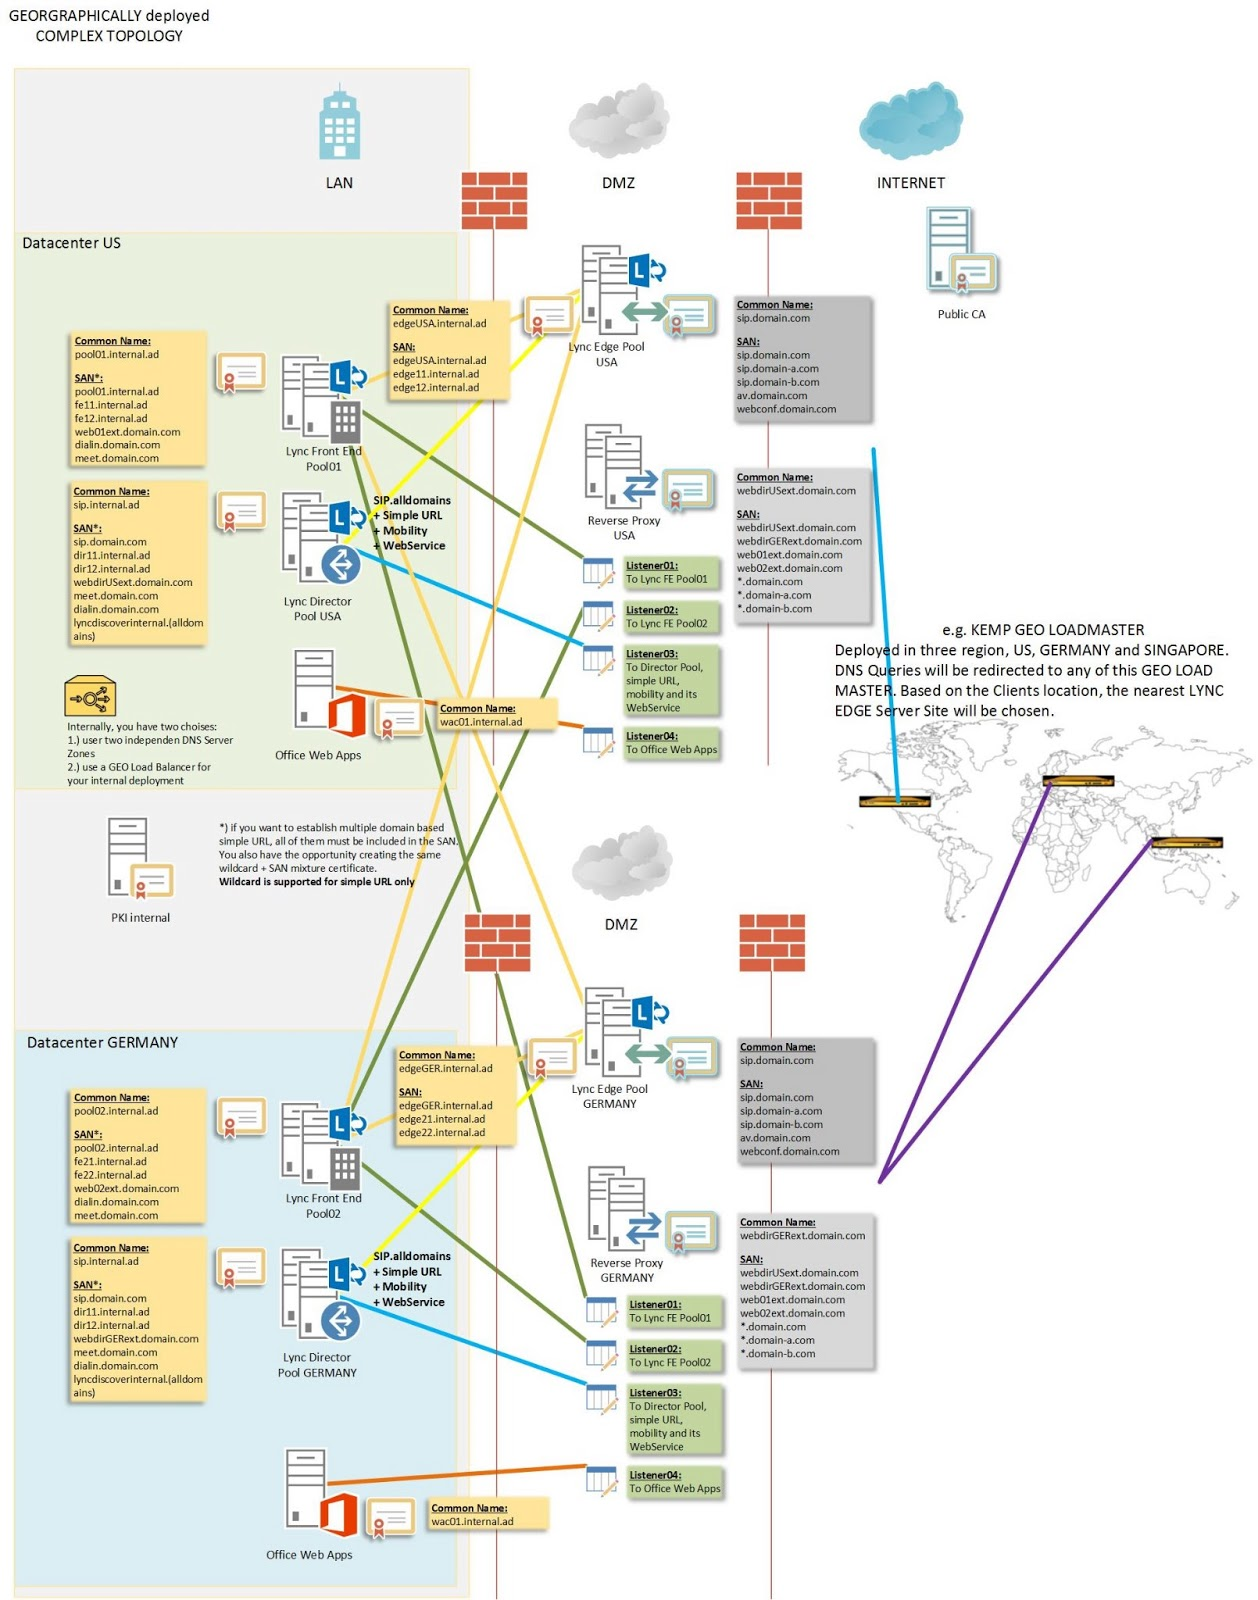 Lync certificate planning and assignments 323 geographically deployed complex topology yelopaper Gallery